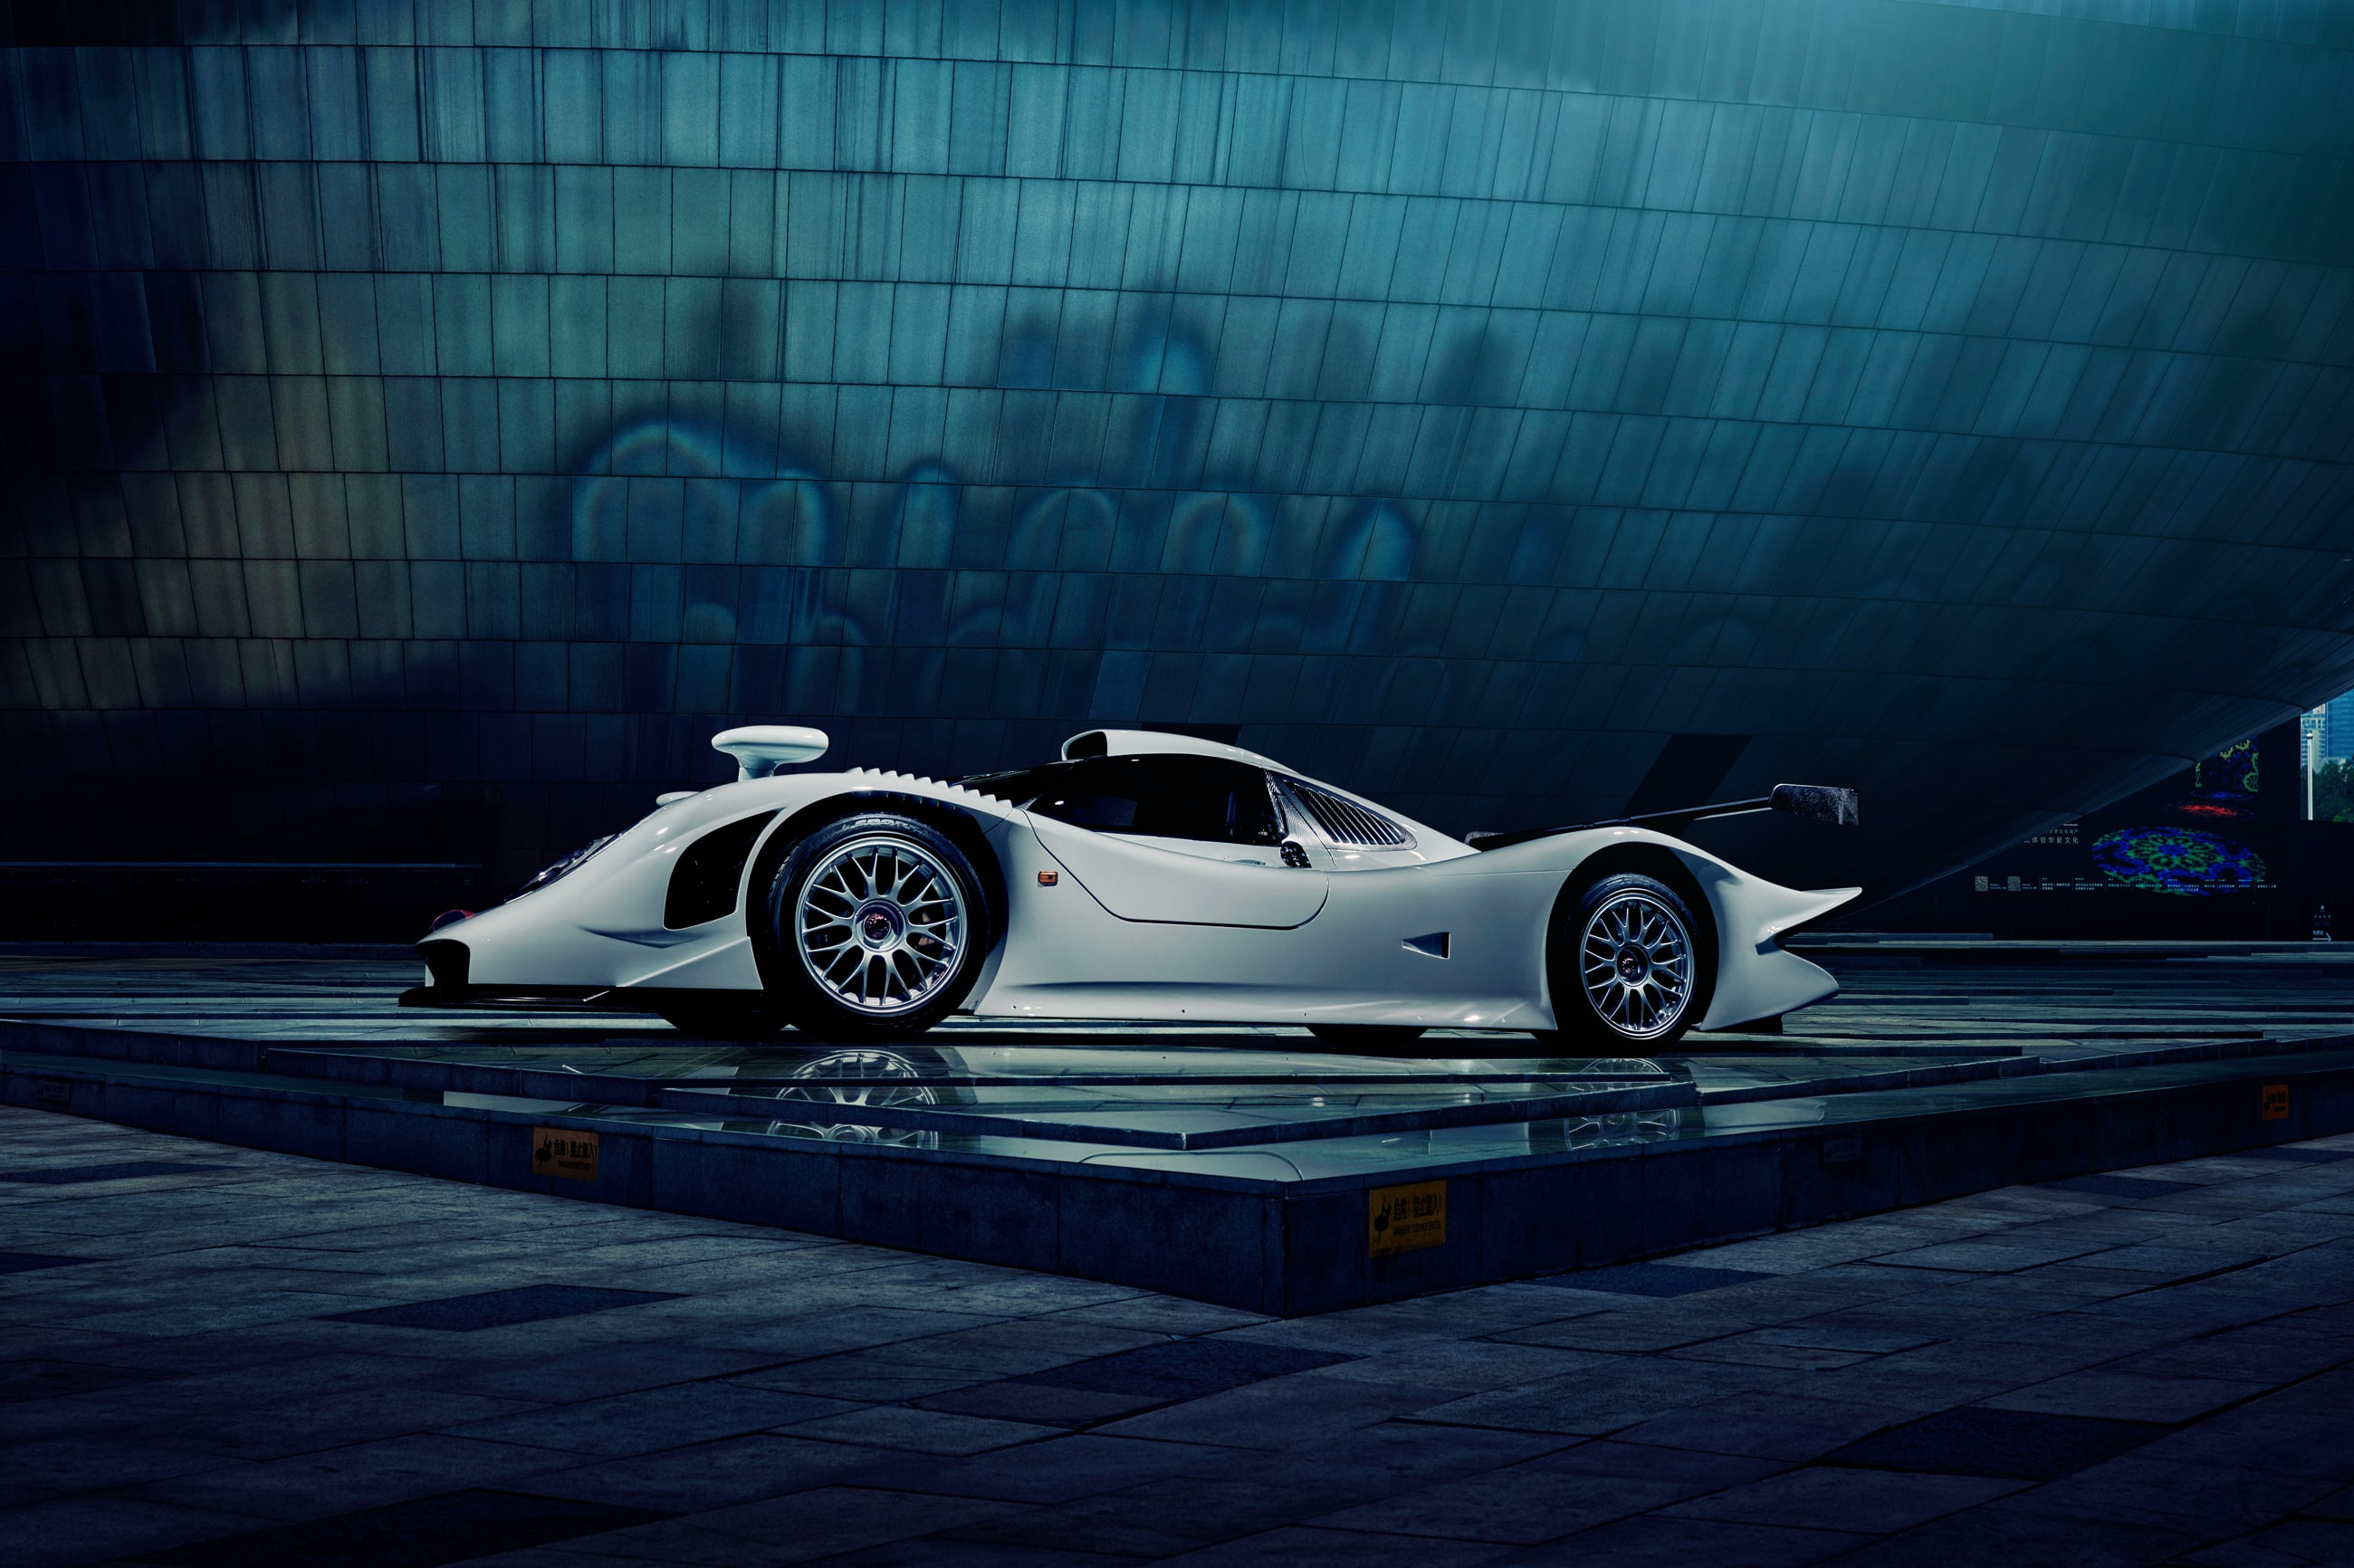 Porsche 911 GT1 by photographer Steffen Jahn